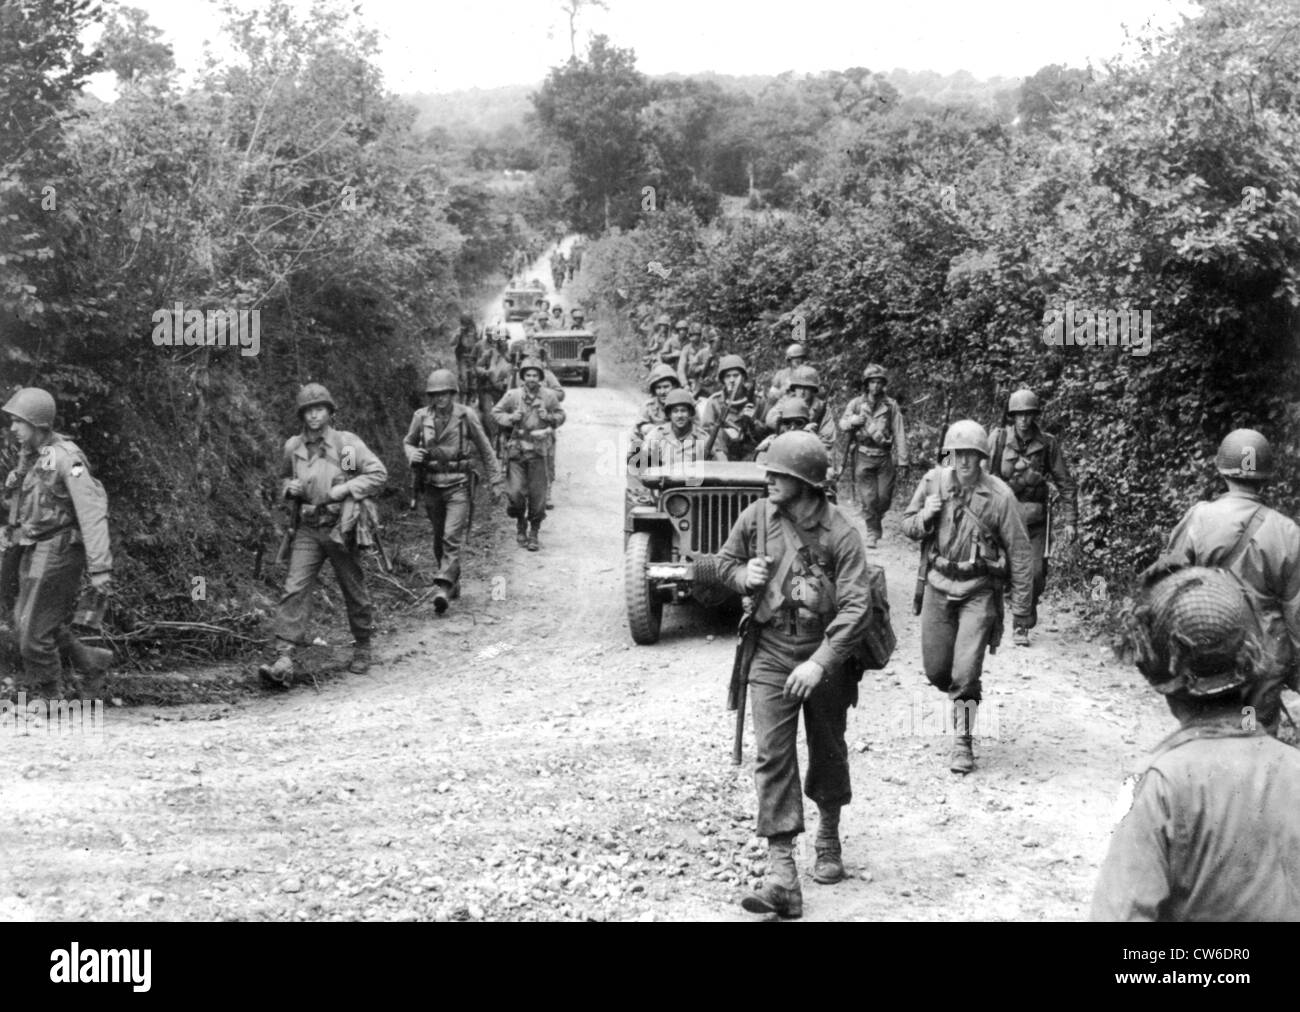 American troops pursue retreating Germans  in Normandy, Summer 1944 Stock Photo